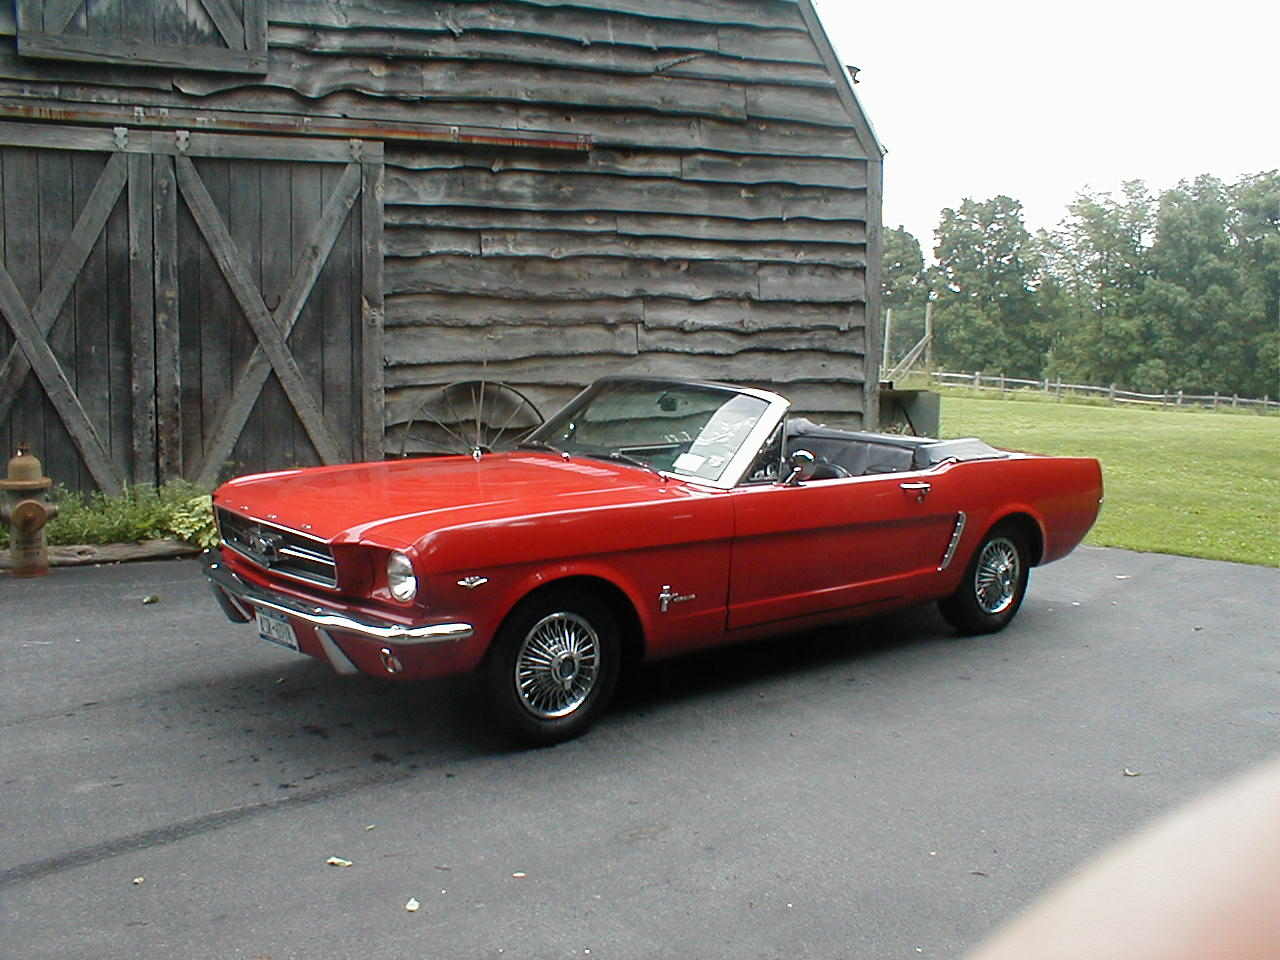 Top 10 Mustangs of All Time (#2) 1964 ½ Mustang - OnAllCylinders